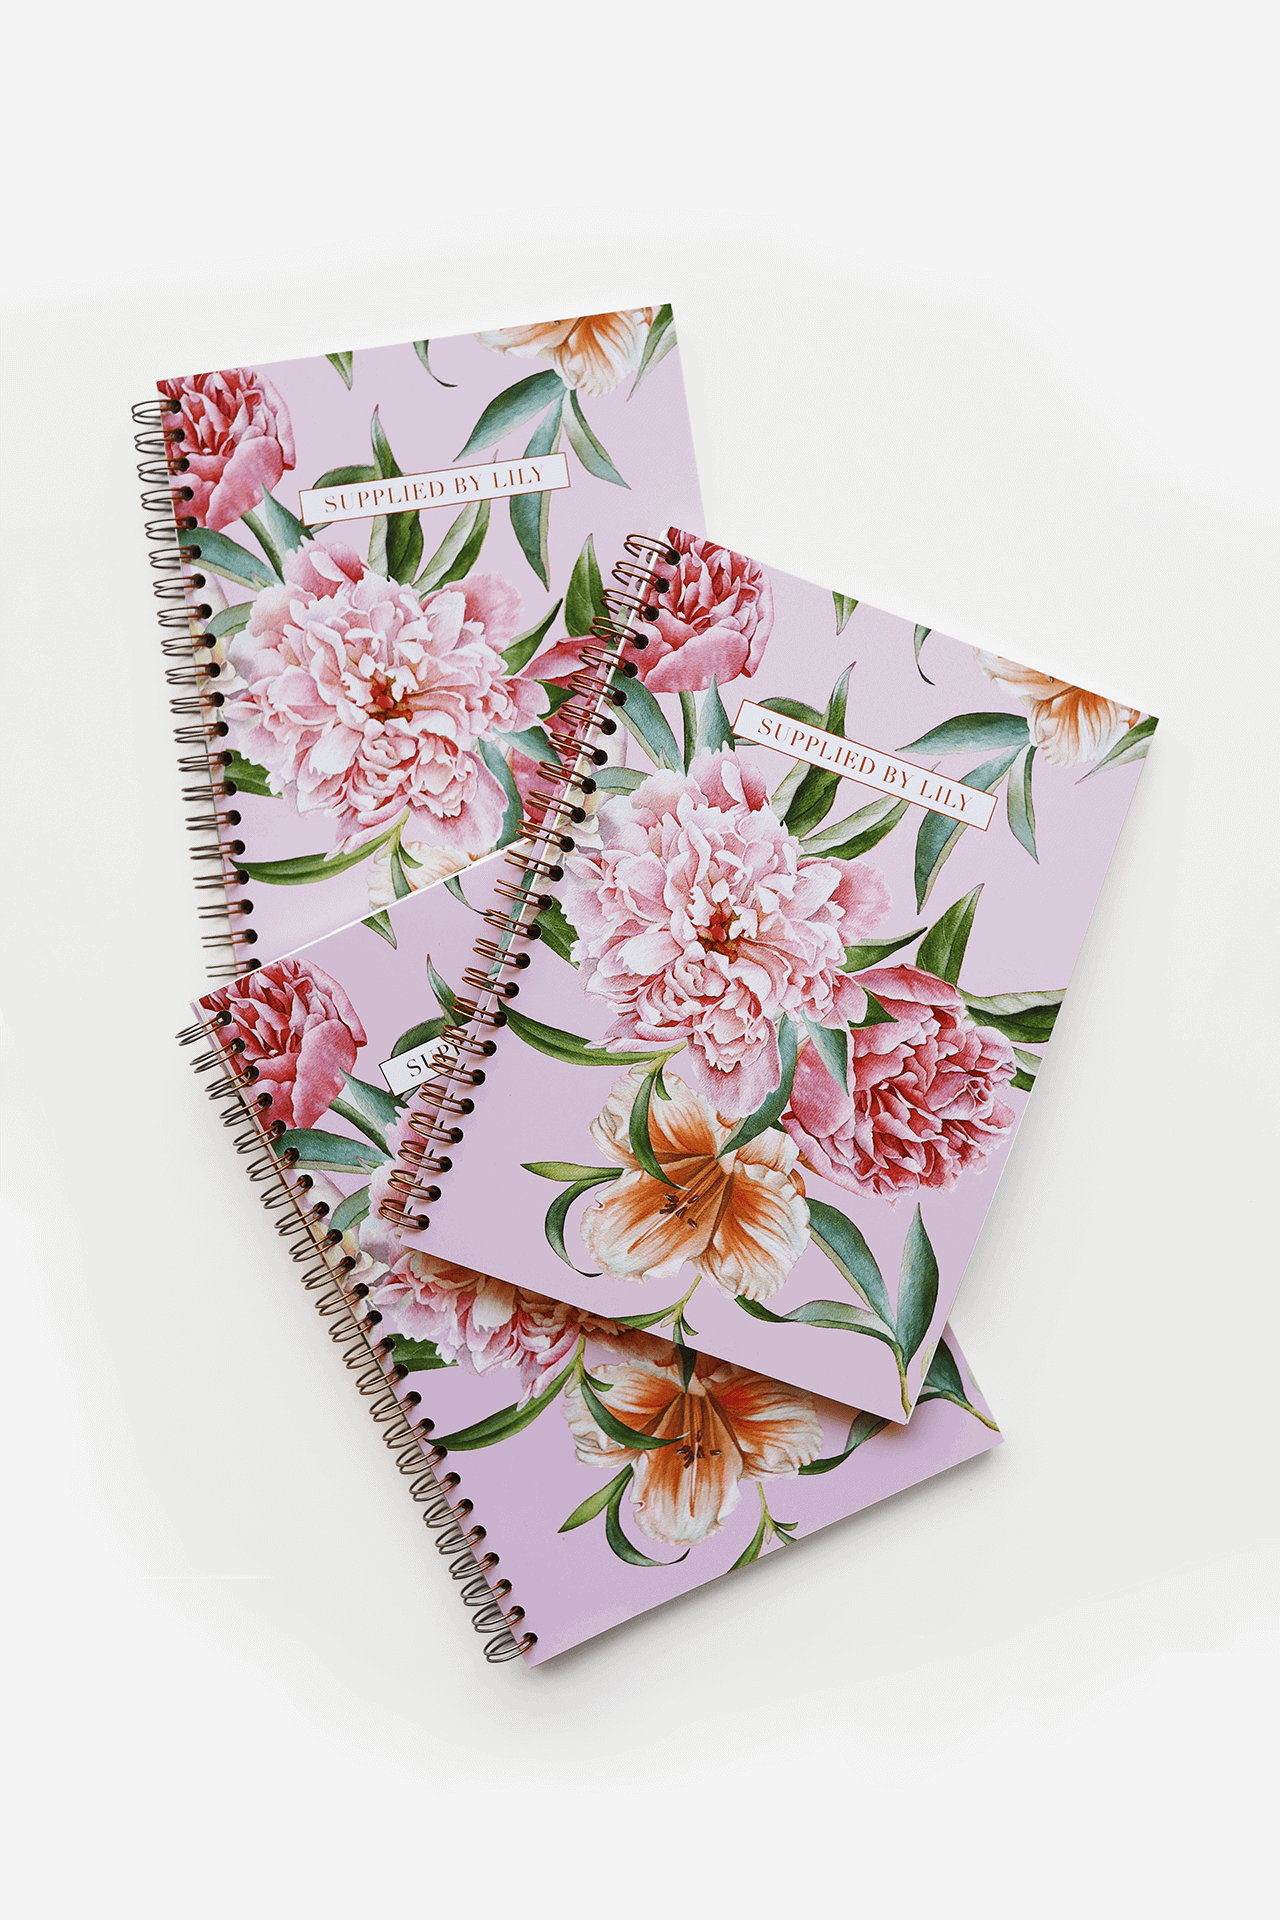 Supplied by Lily A5 Spiral Notebook in Luxurious Blush Pink